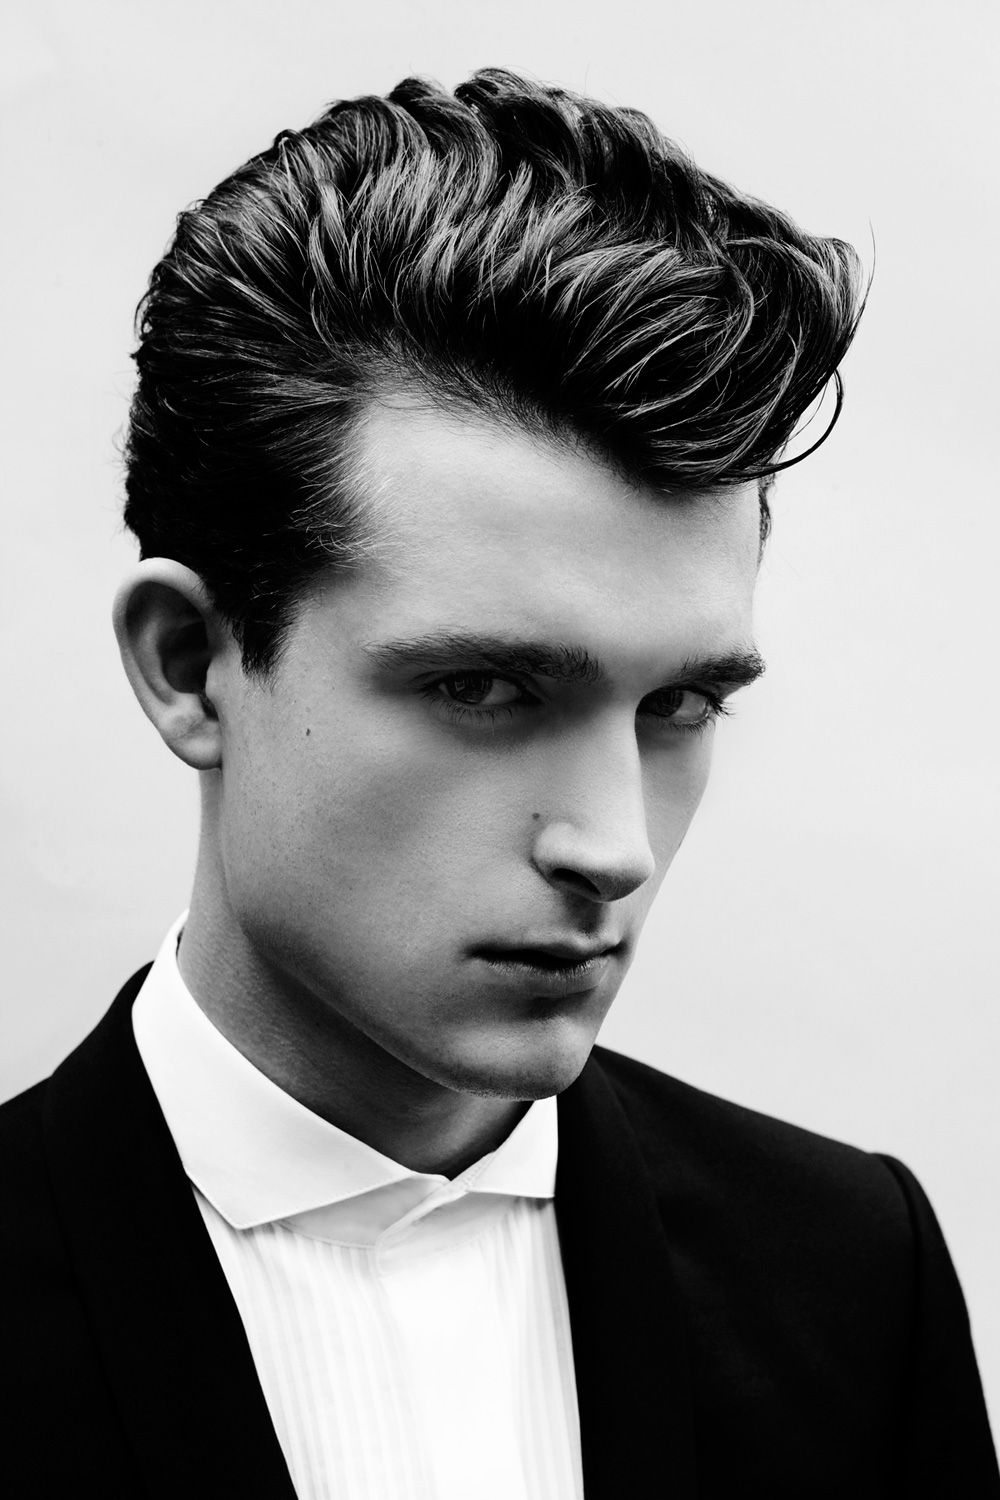 Pin By Fenox Artworks On Hair Mens Hairstyles Rockabilly Hair Haircuts For Men